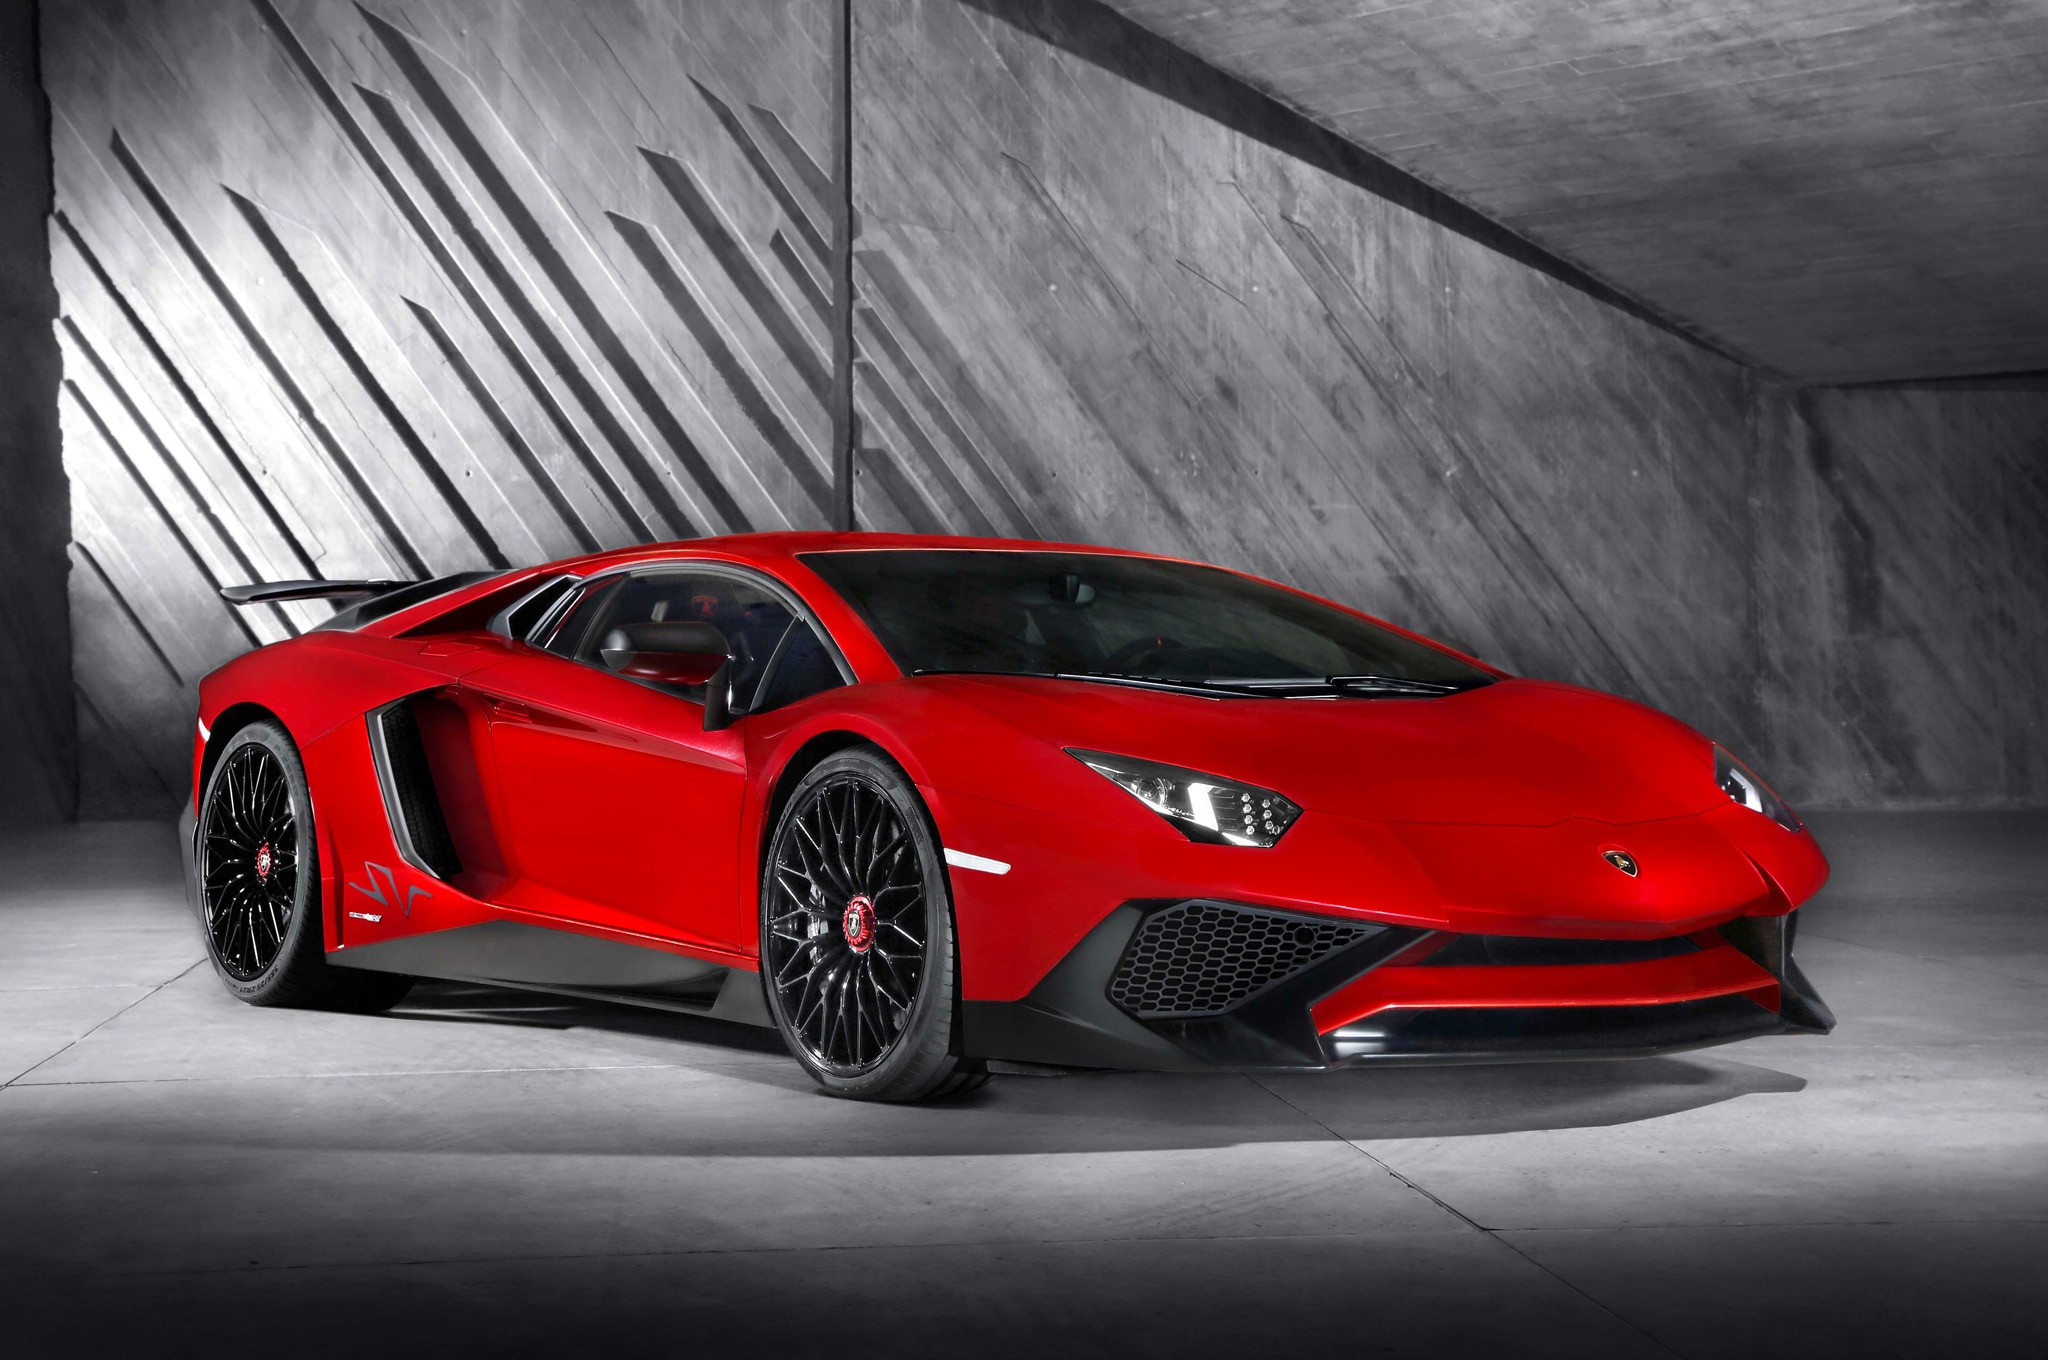 lamborghini aventador lp750 4 sv debuts with 740 hp photo gallery. Black Bedroom Furniture Sets. Home Design Ideas